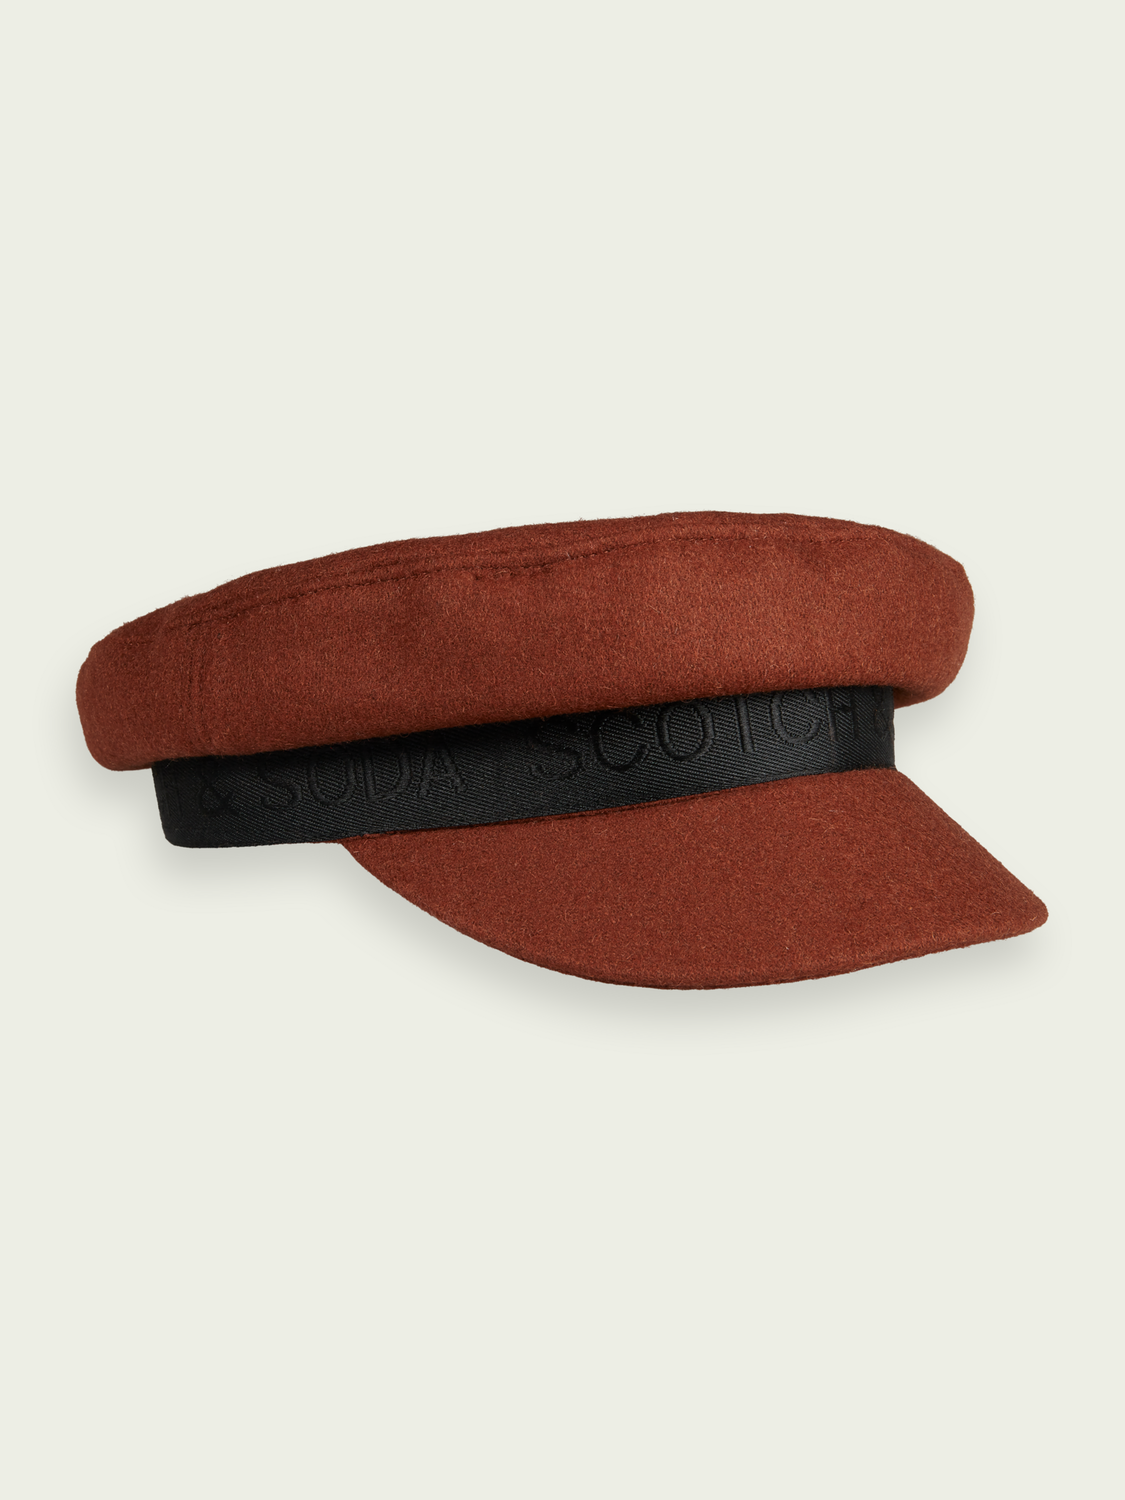 Hidden category Cacao captain hat